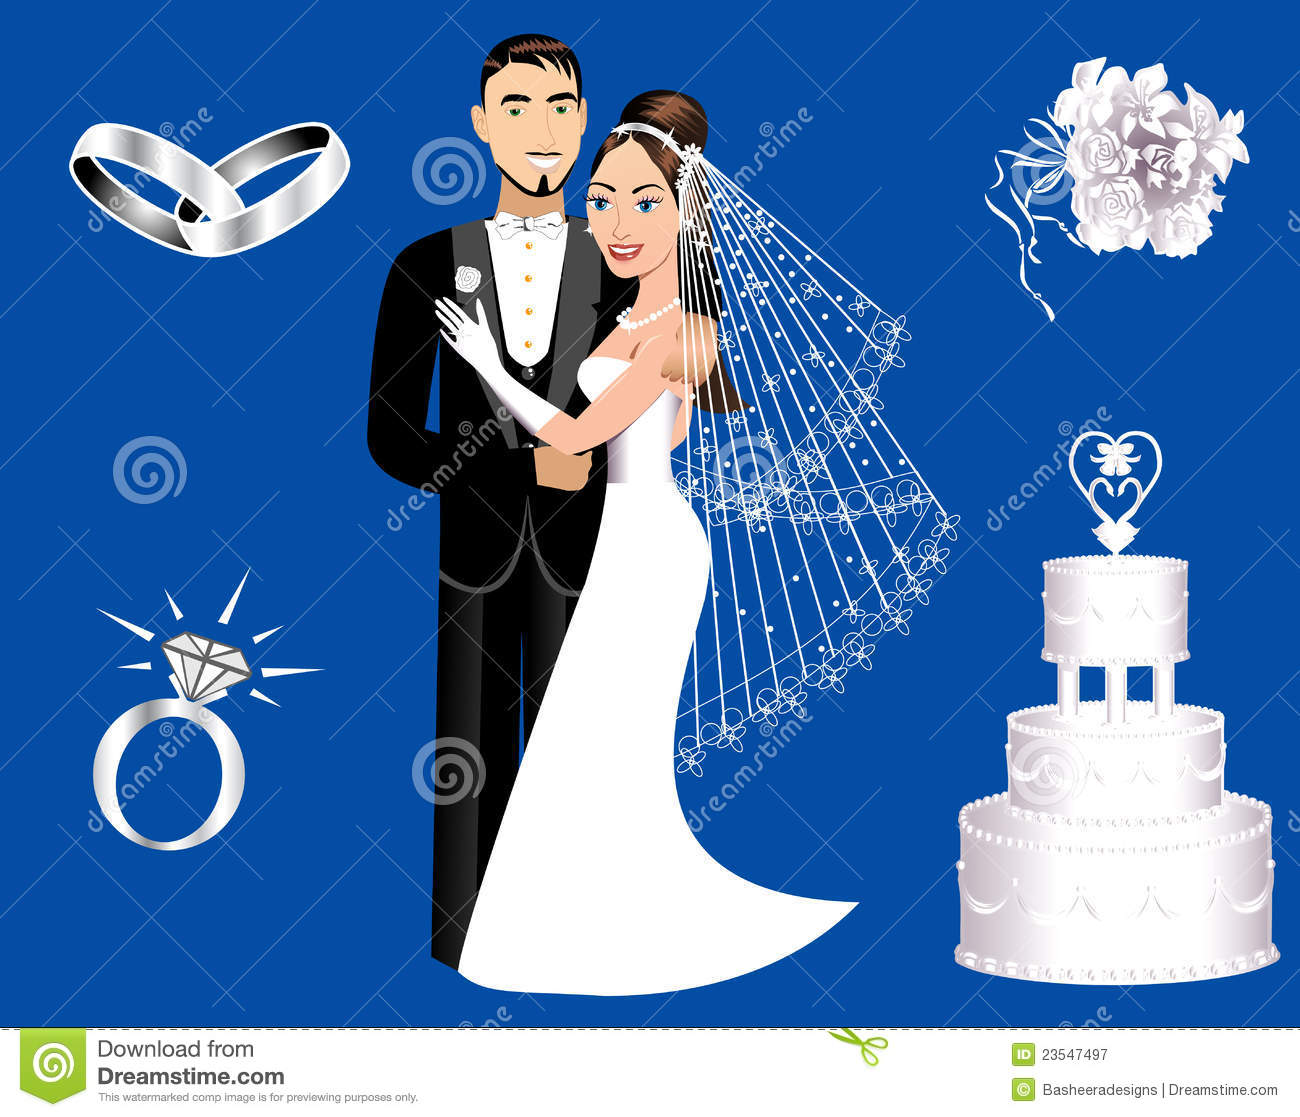 Wedding Icons Royalty Free Stock Photography - Image: 23547497